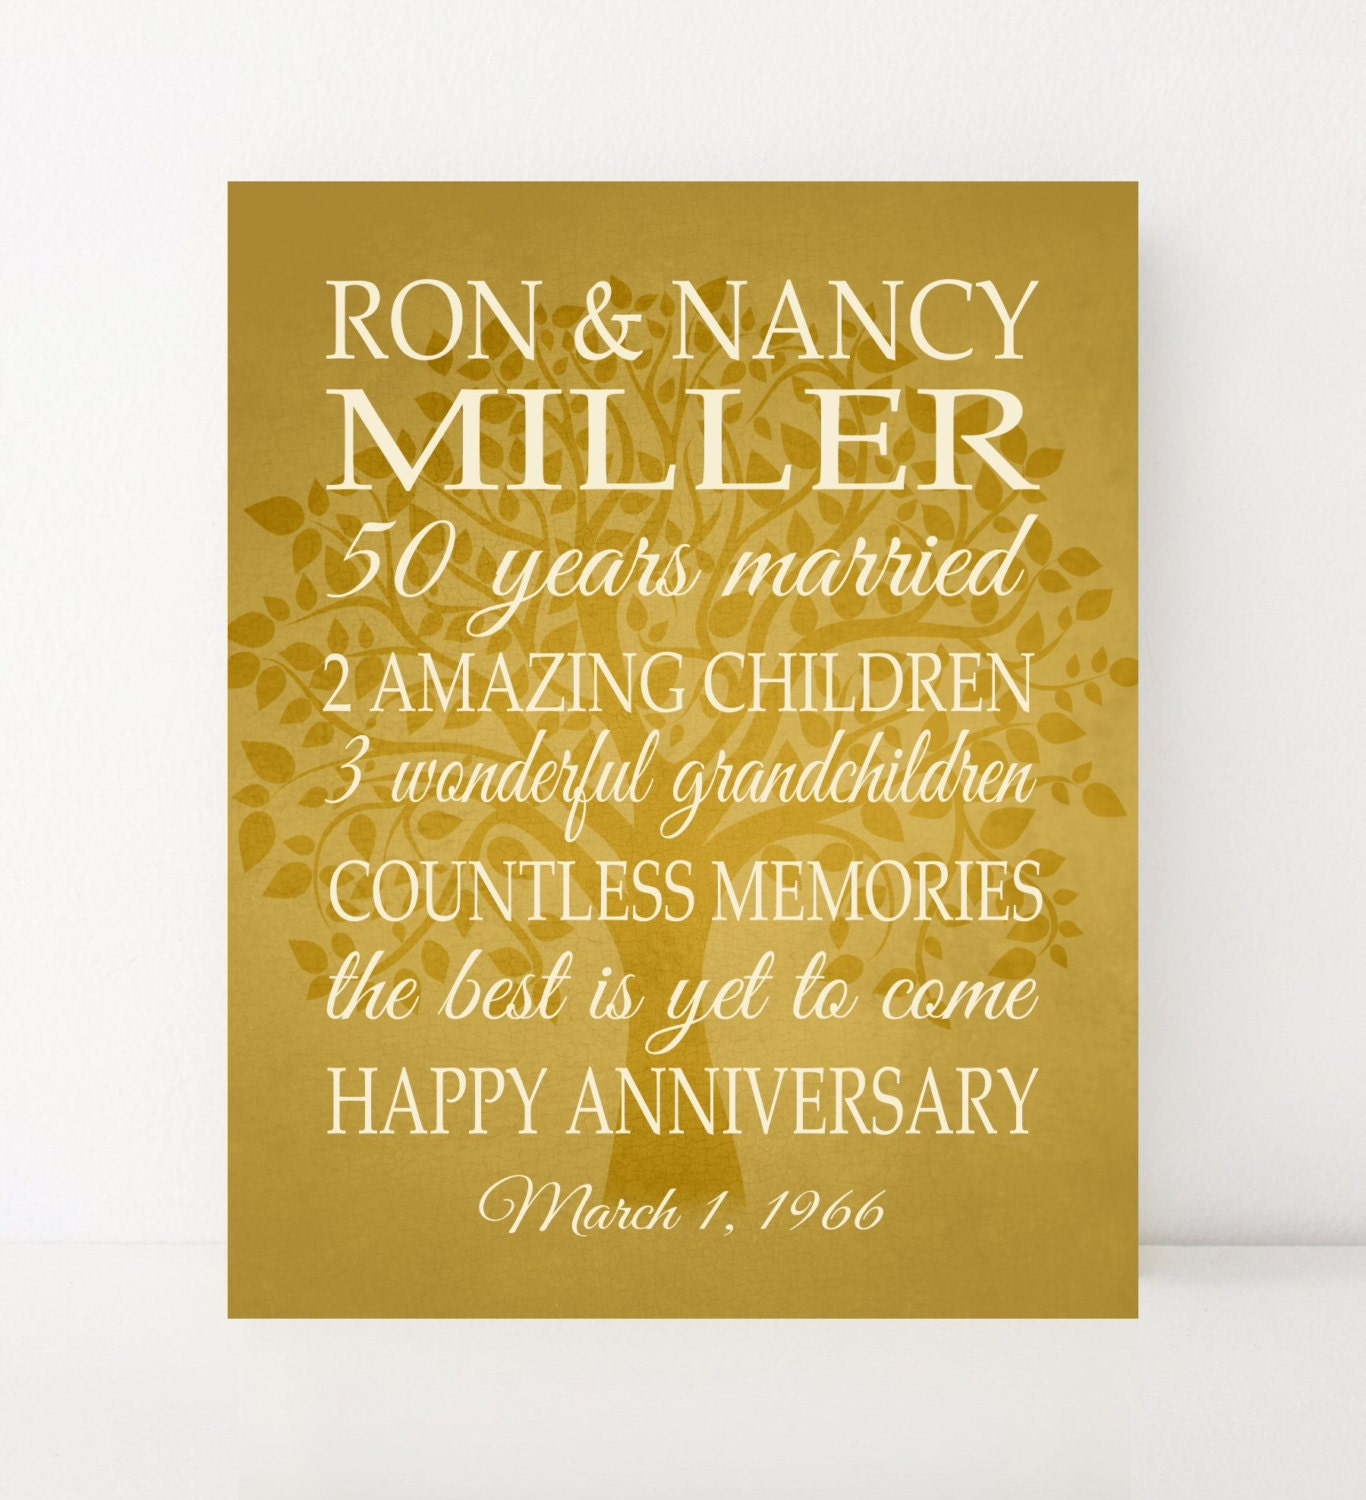 50th anniversary gifts for parents 50 year anniversary wedding for Gifts for parents on anniversary